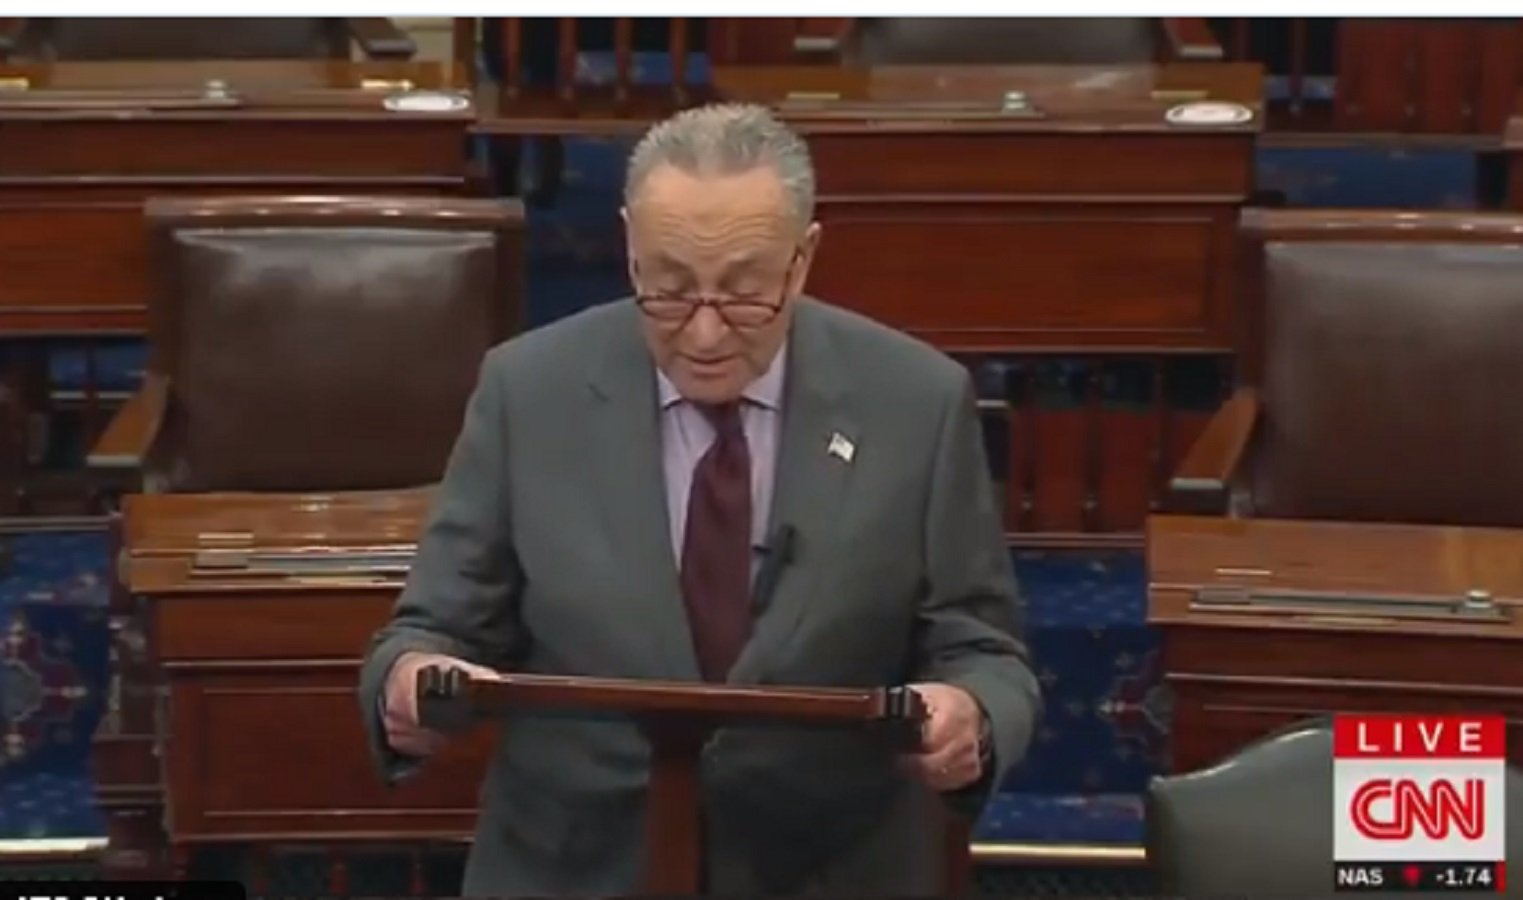 schumer-says-senators-will-have-to-decide-if-donald-trump-incited-the-erection-at-the-capitol